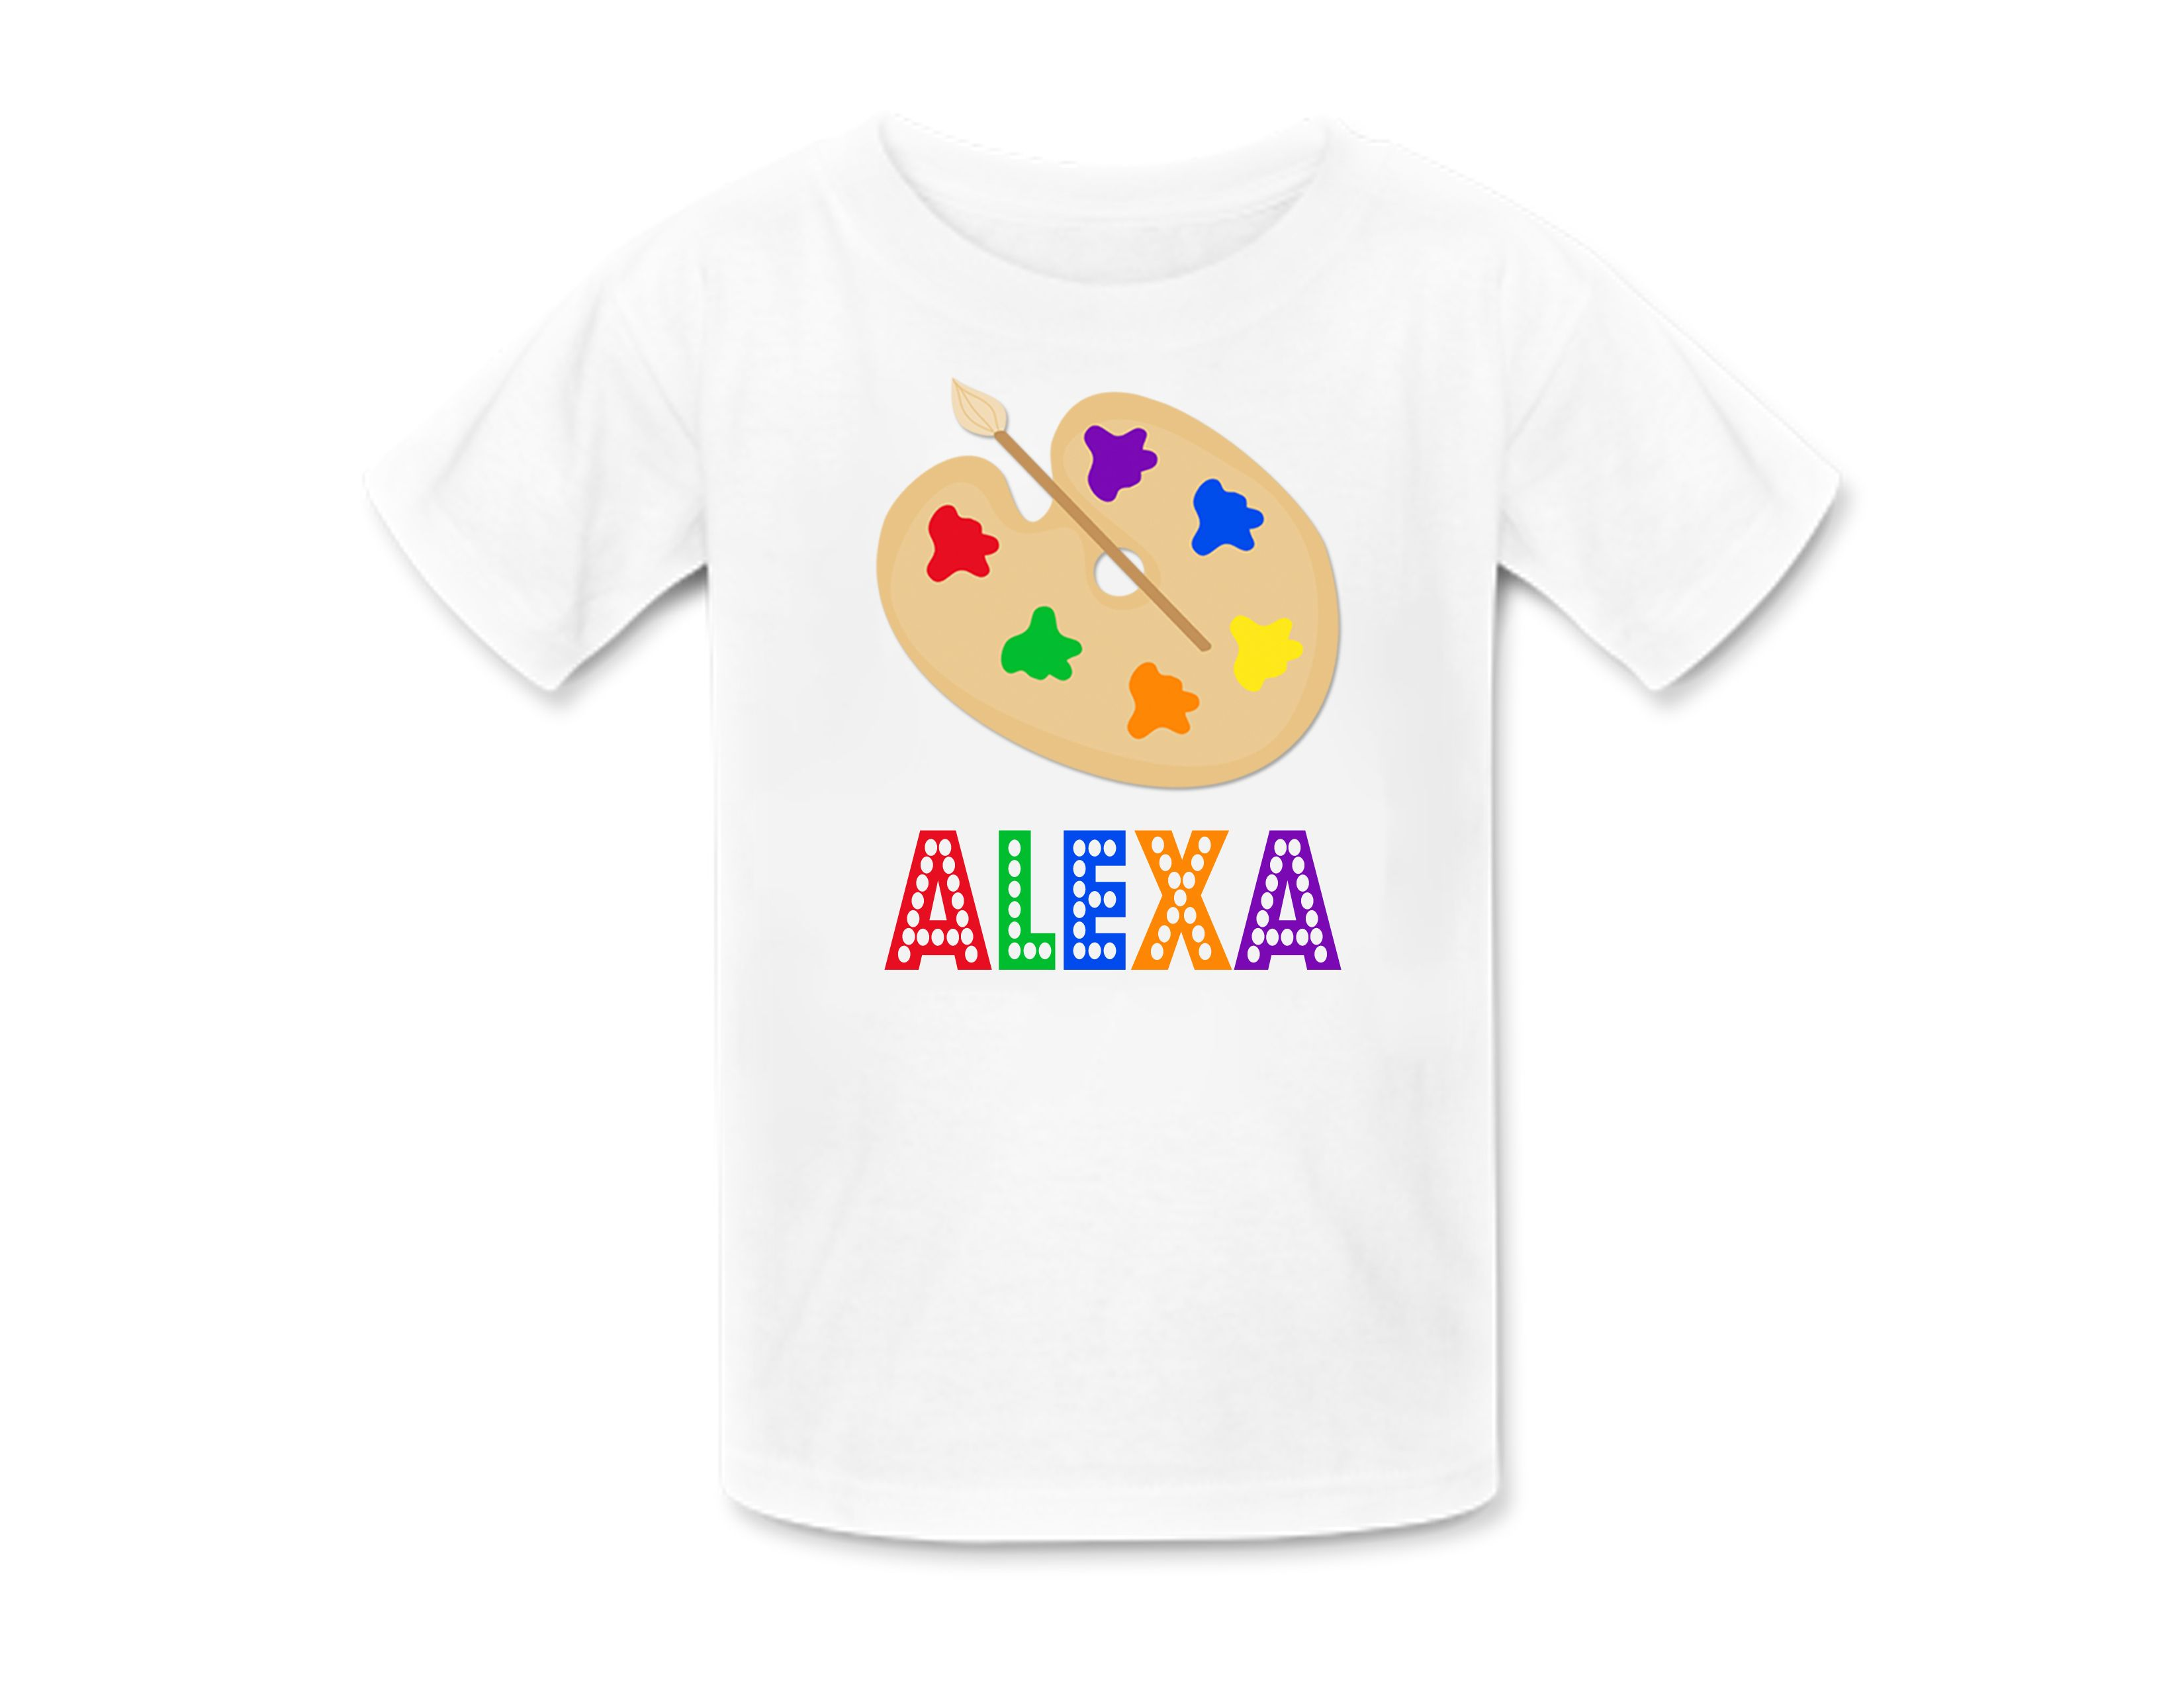 Glitter Force Shirt Custom Name and Age  T-shirt  Personalized Birthday Shirt